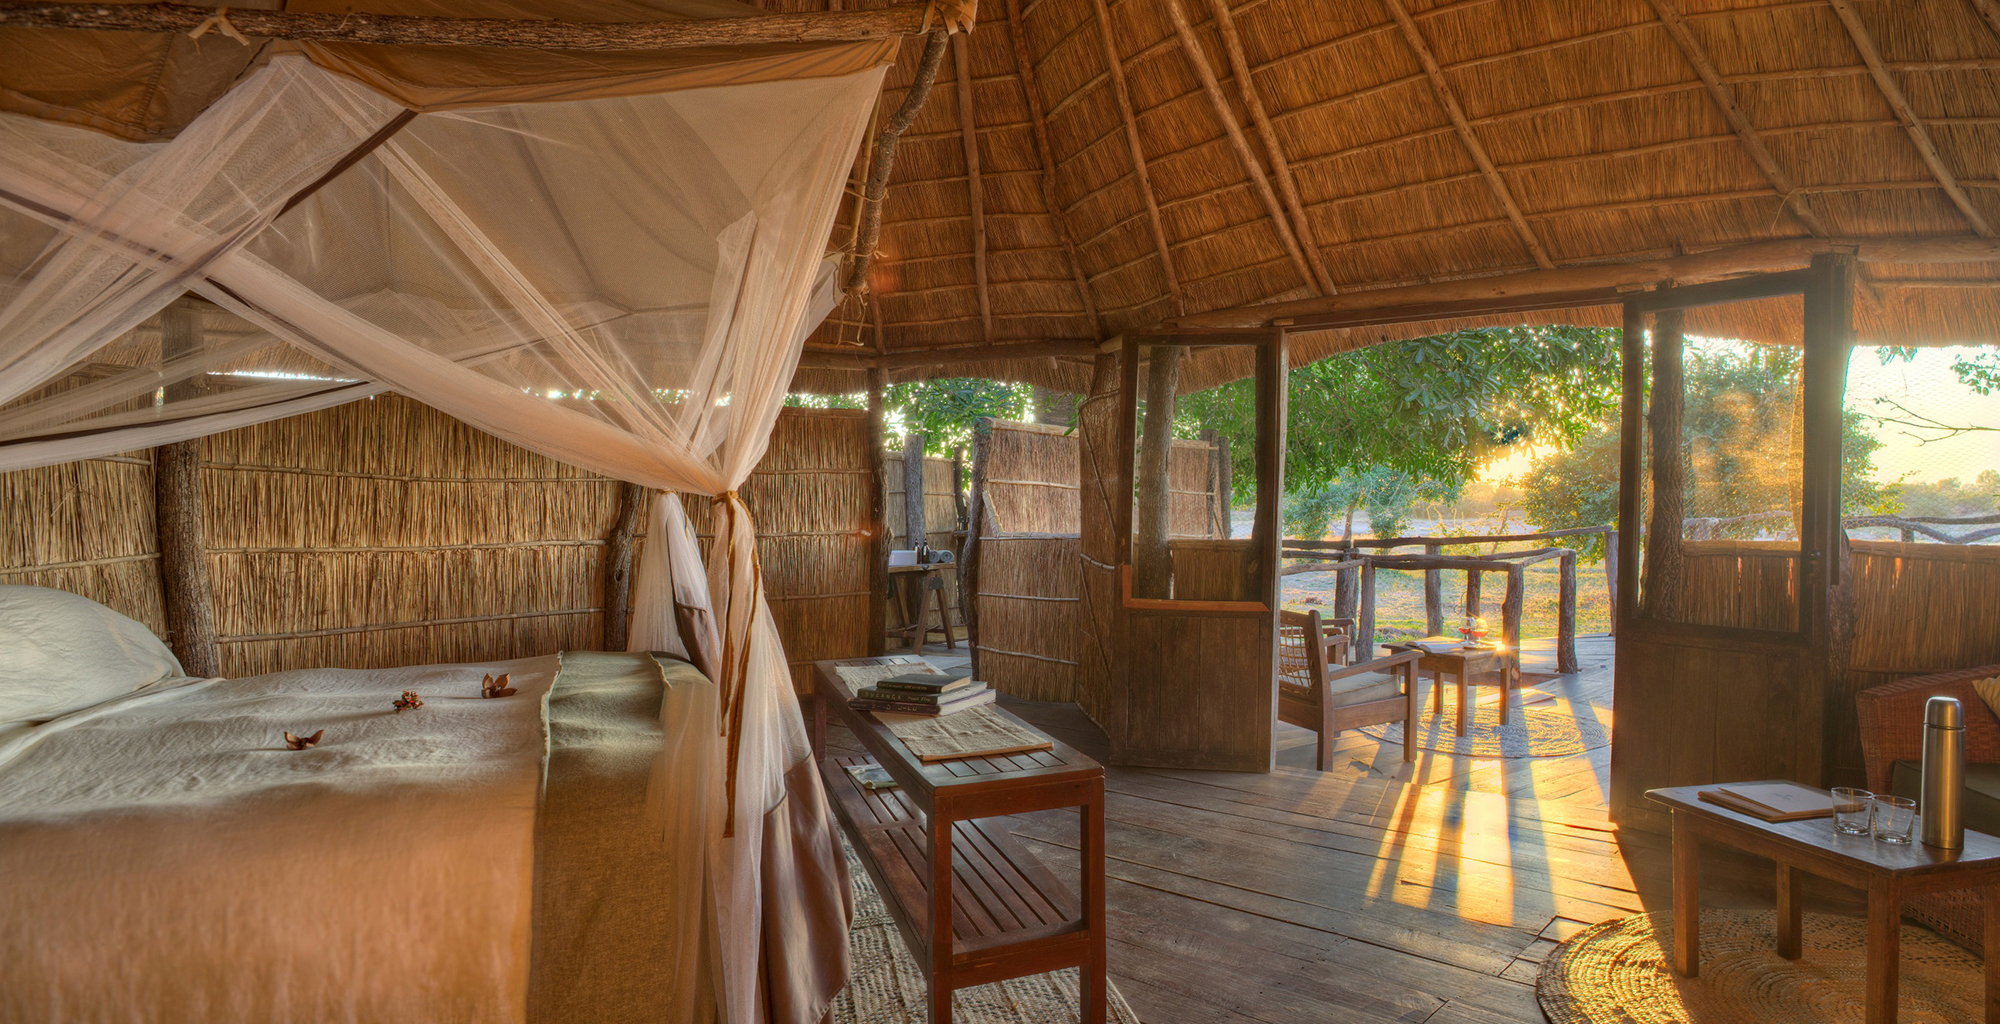 Zambia-Nsolo-Camp-Bedroom-View